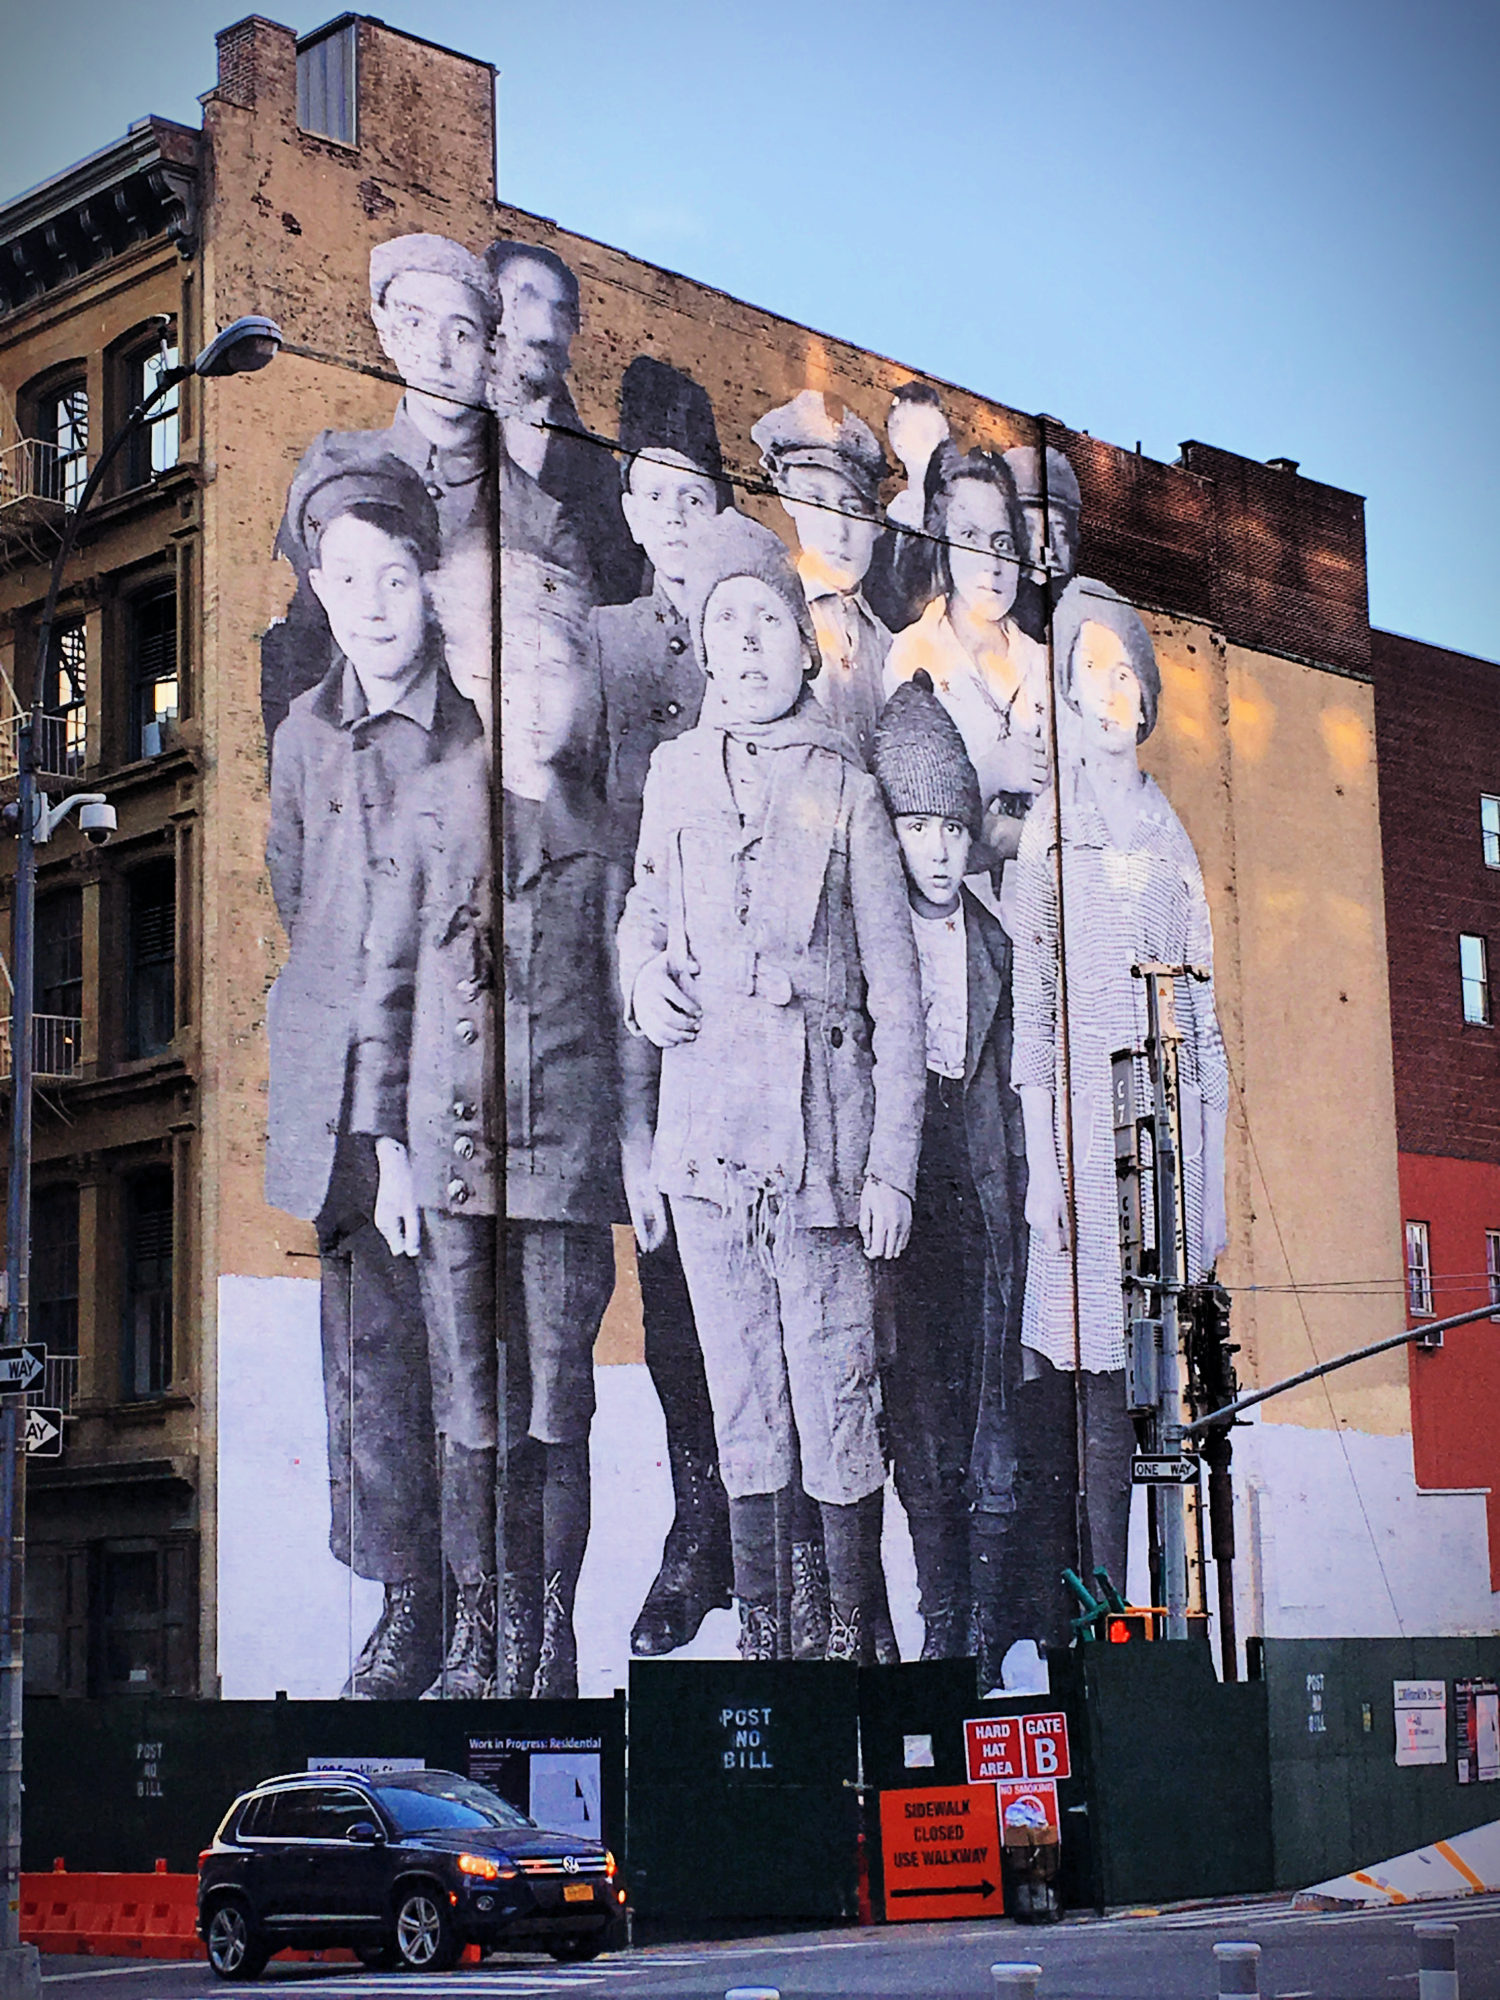 Self-guided street art tours in New York are a great way to enjoy a weekend in New York City on a budget.